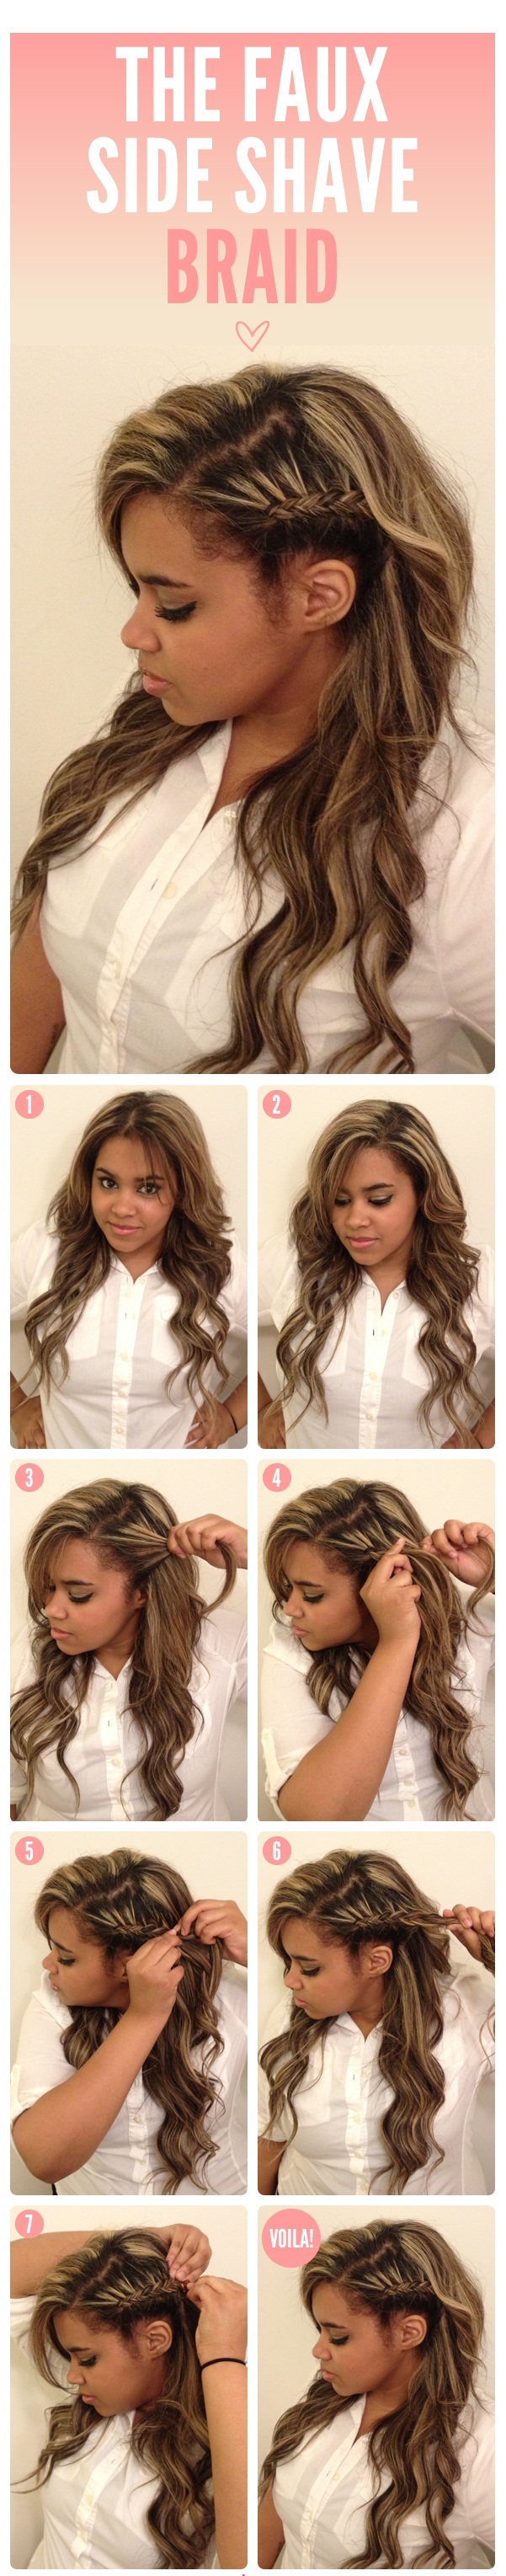 Astonishing 25 Diy Braided Hairstyles You Really Have To Pin Hairstyles For Women Draintrainus